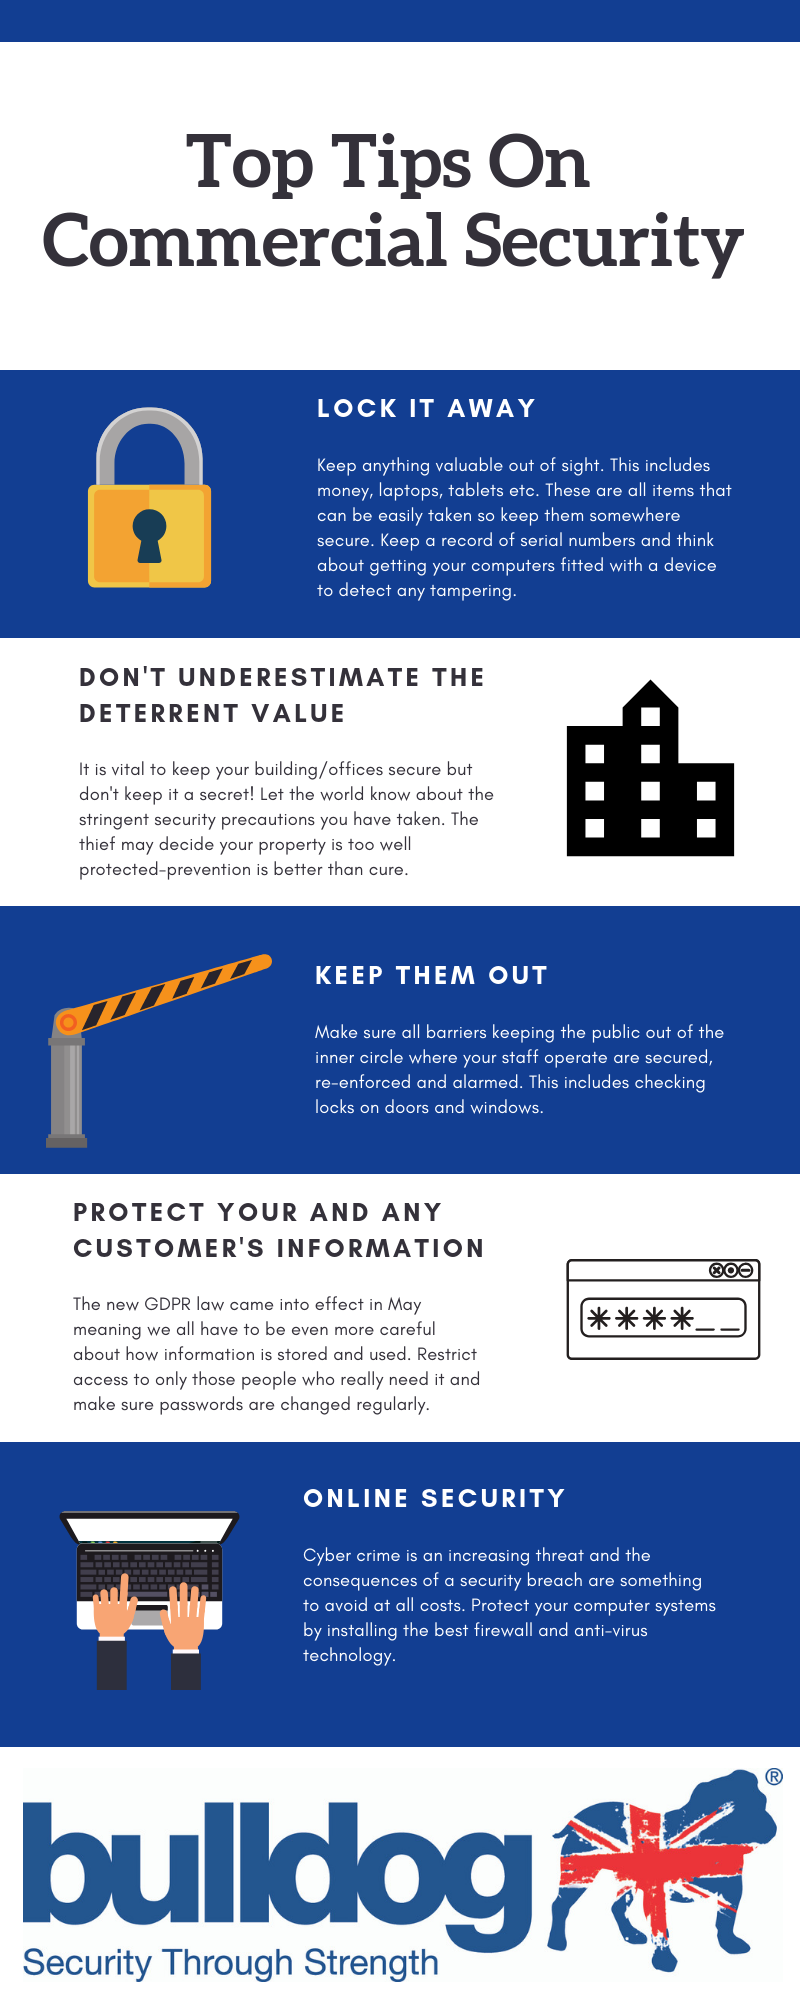 Top Tips On Commercial Security.png